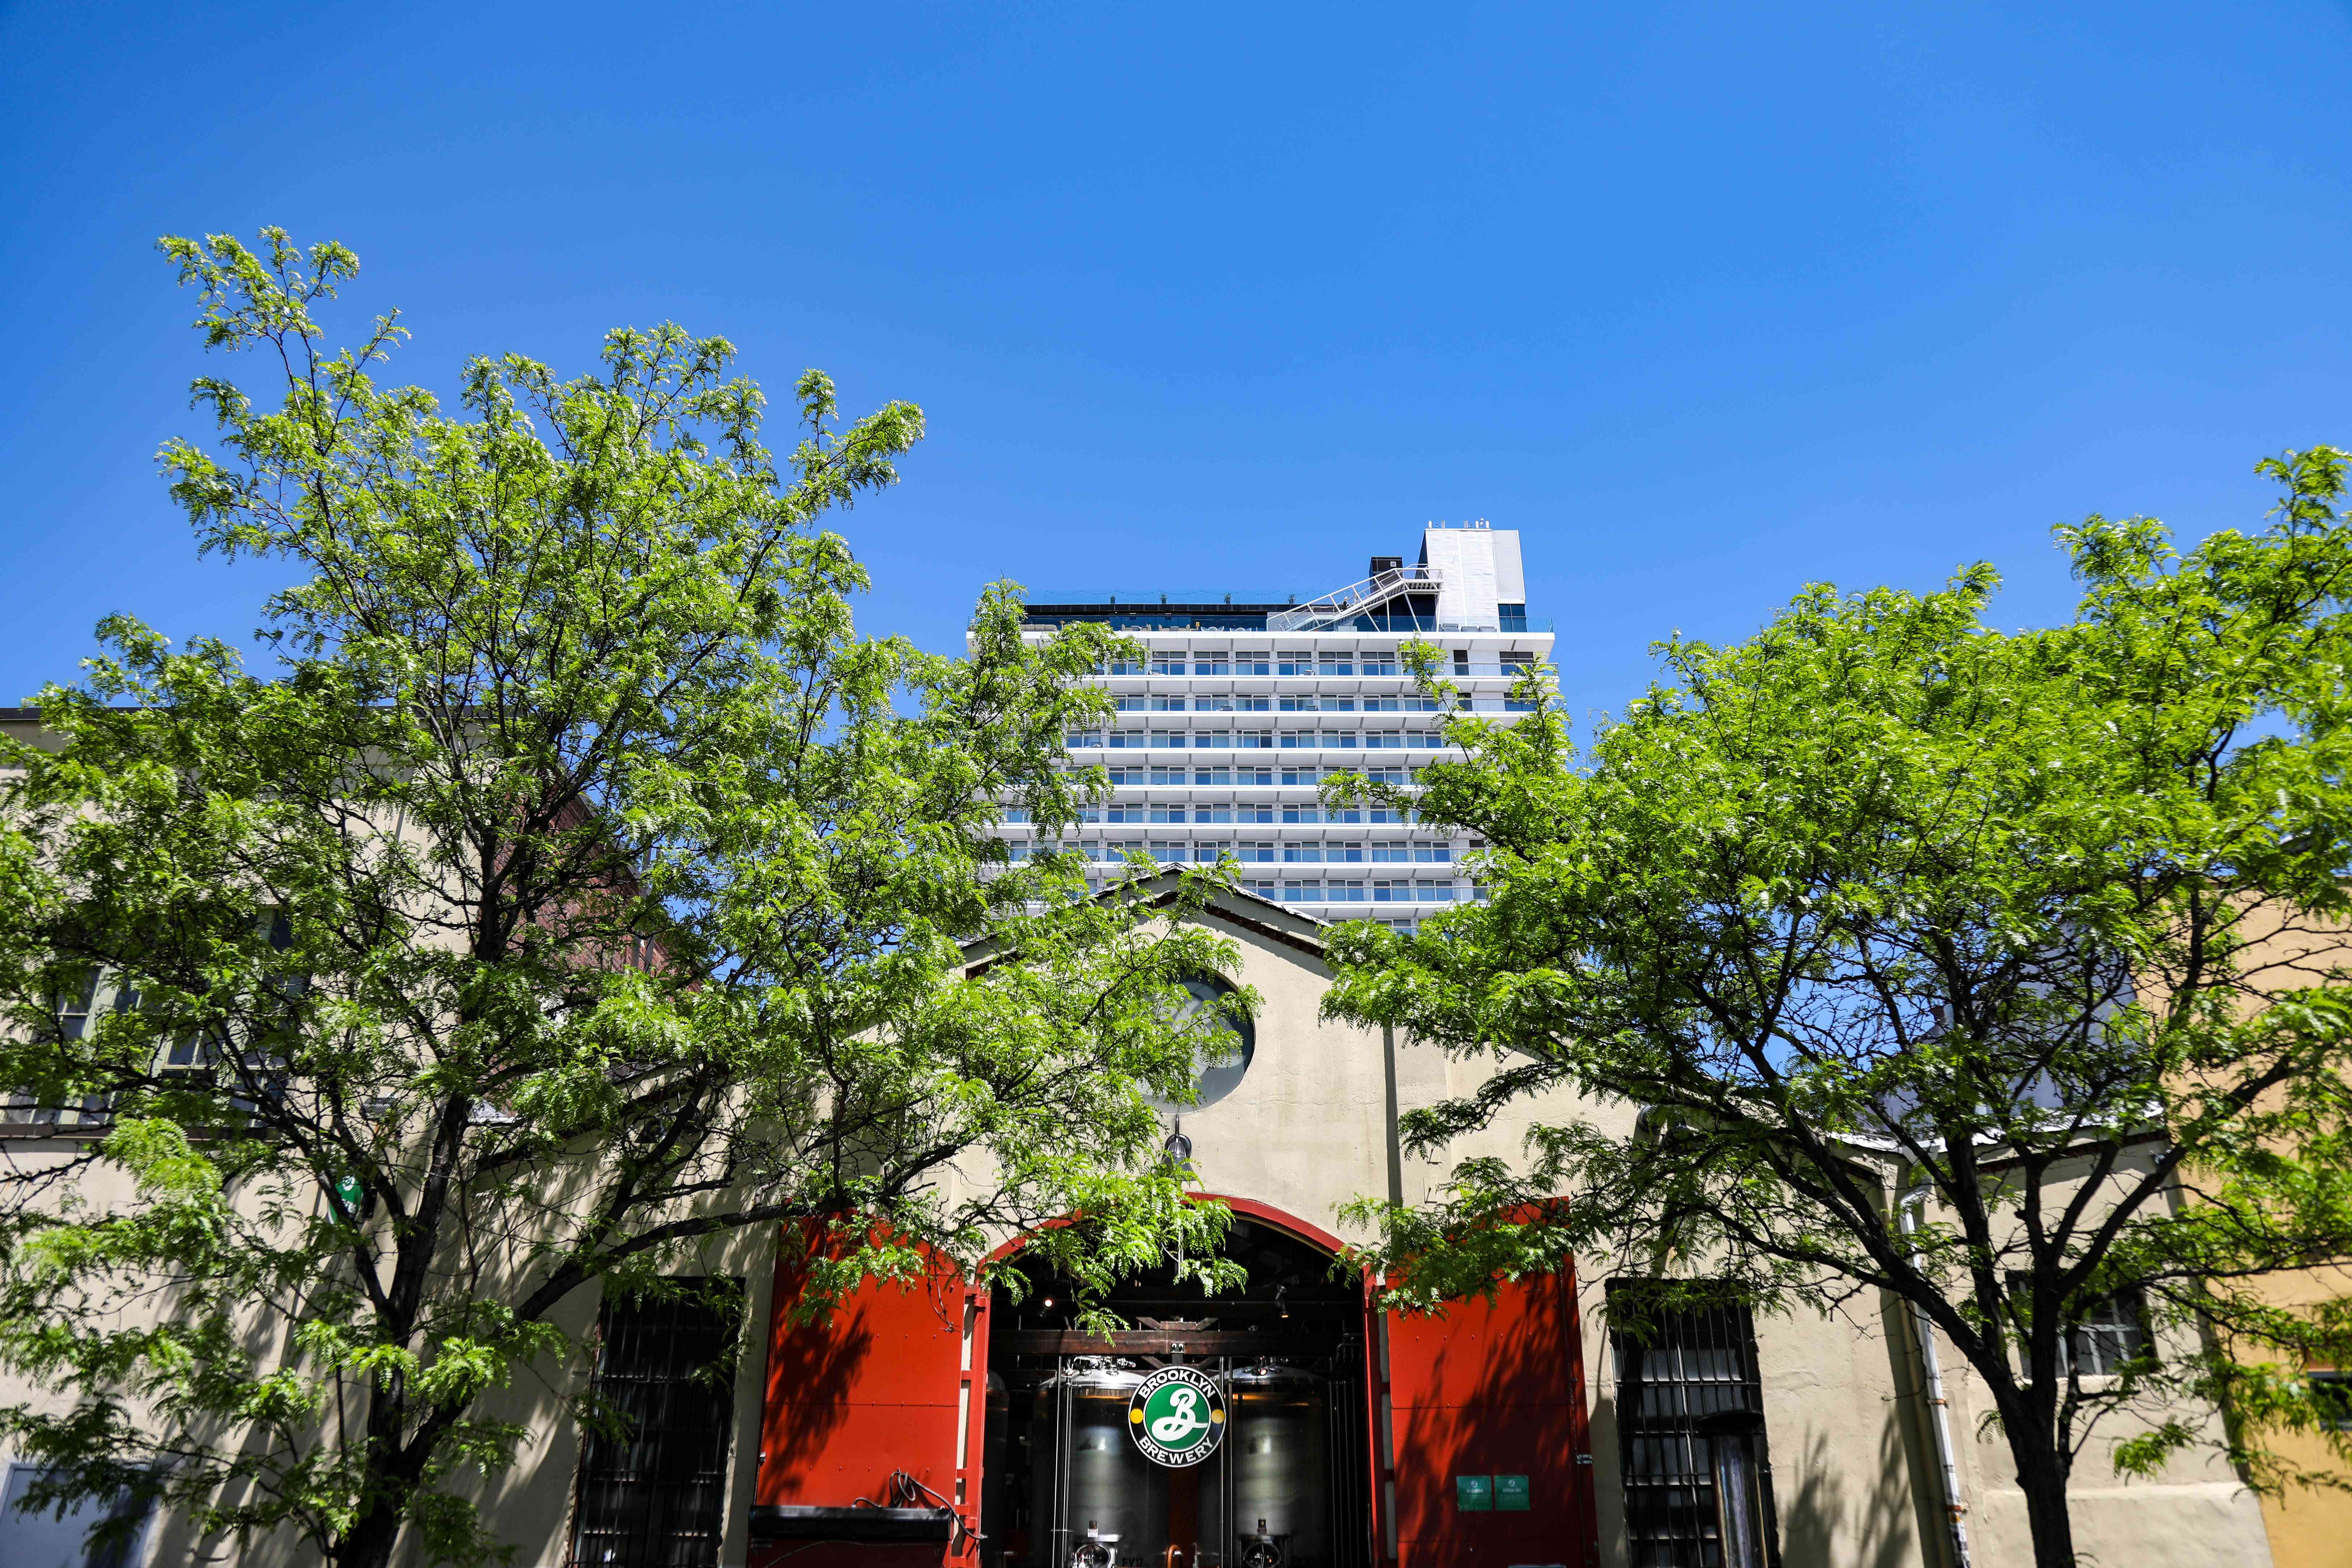 Exterior of the Brooklyn Brewery